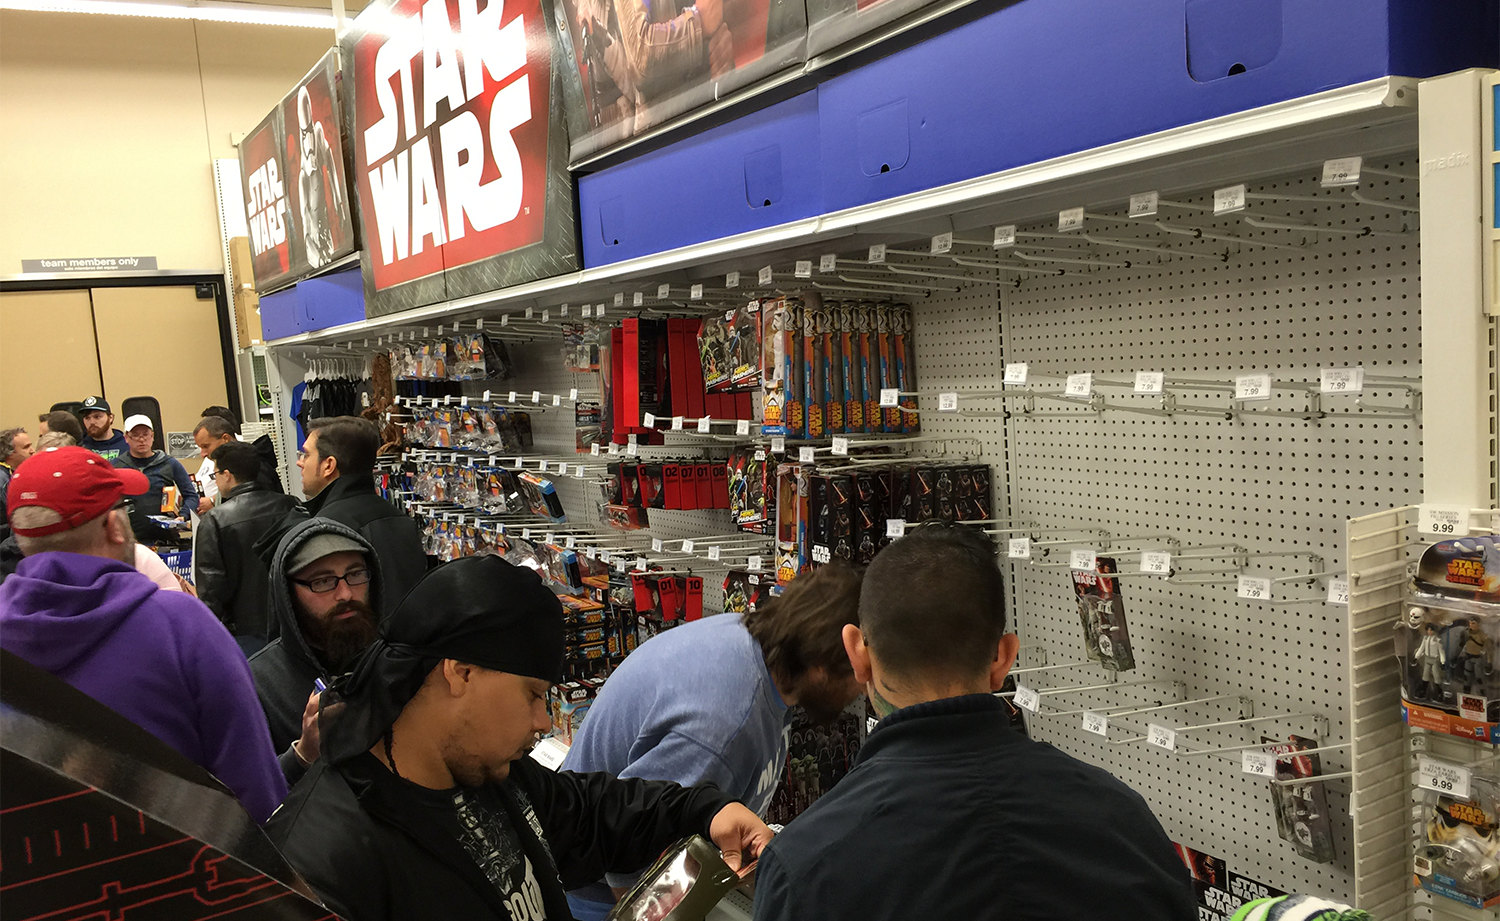 Fans in line for Force Friday at the Toys'R'Us in Tukwila, WA